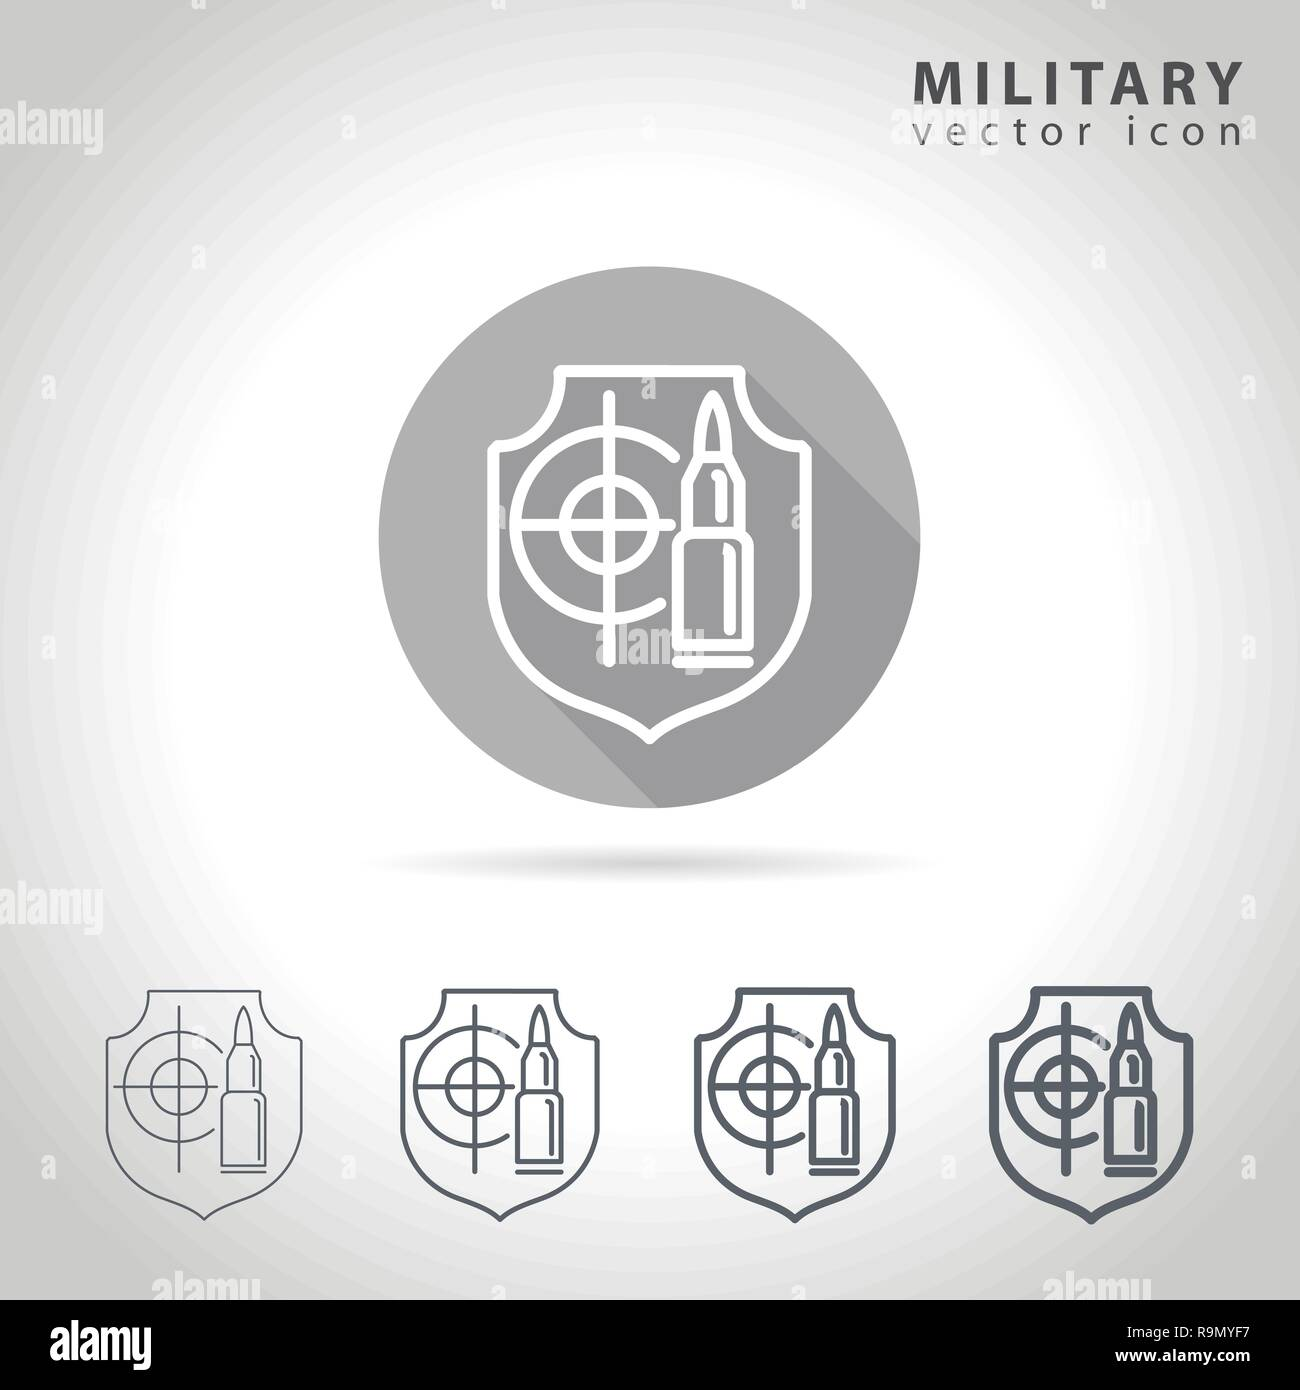 Military outline icon set, collection of bullet, target and army